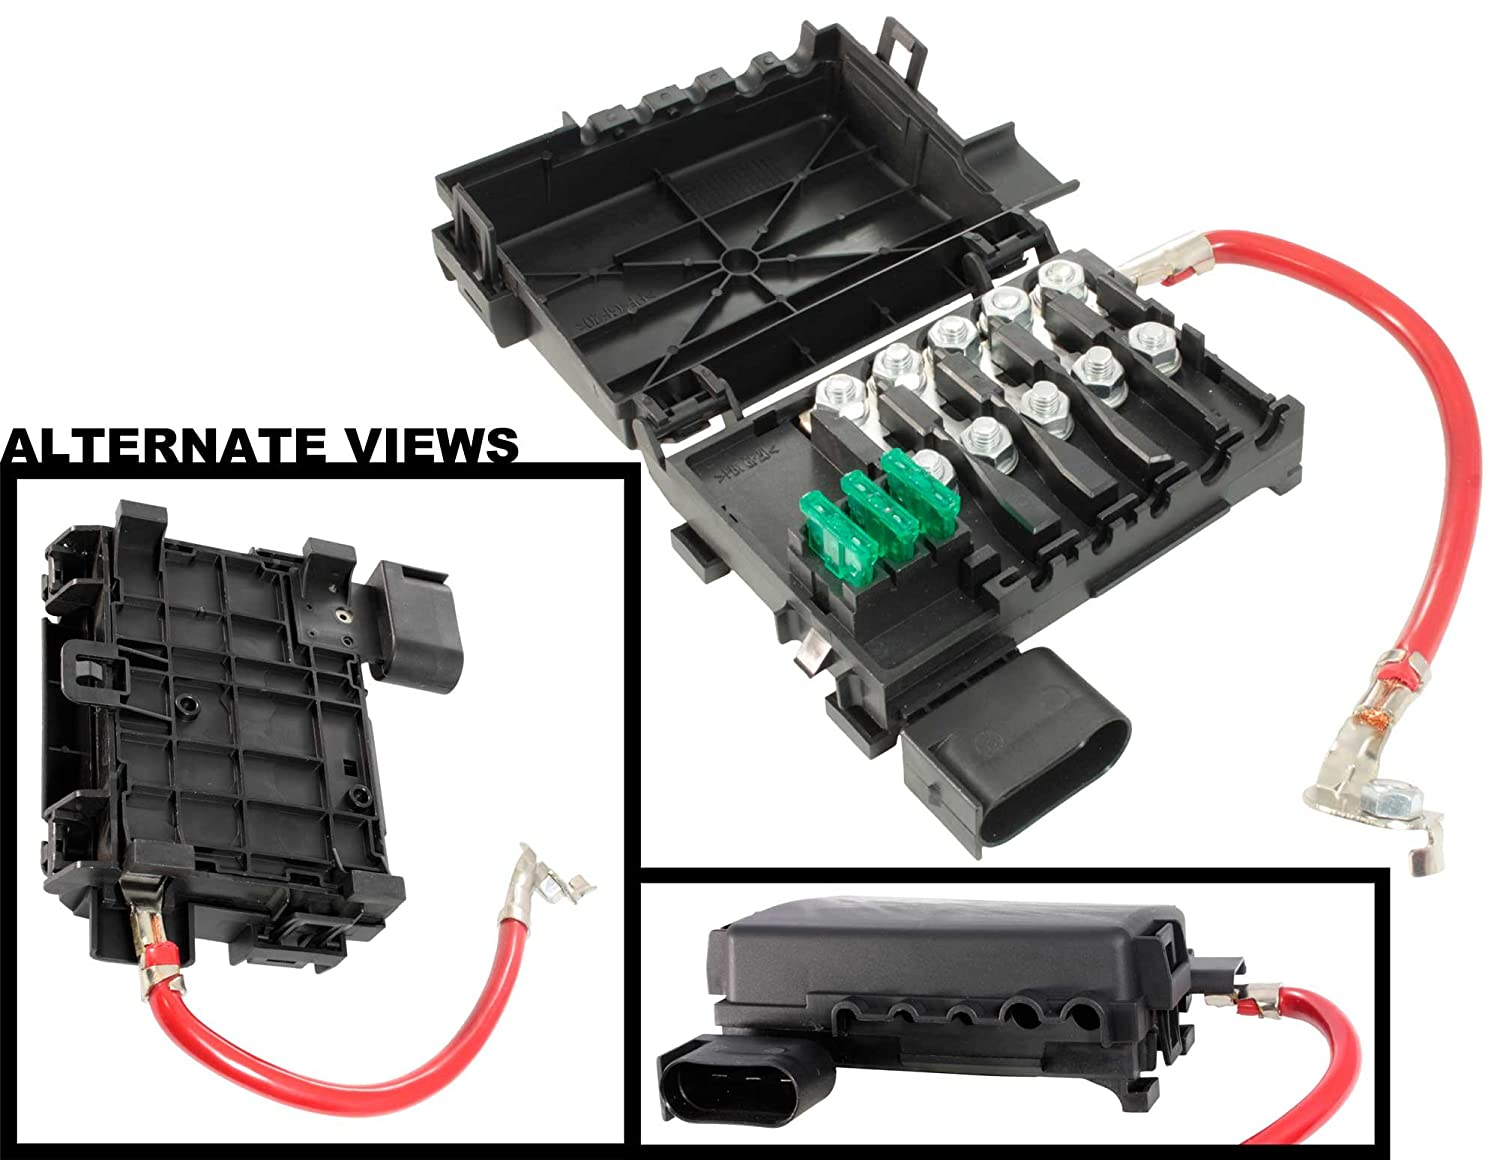 B745C6 Vw Beetle Fuse Box Melting | Wiring LibraryWiring Library